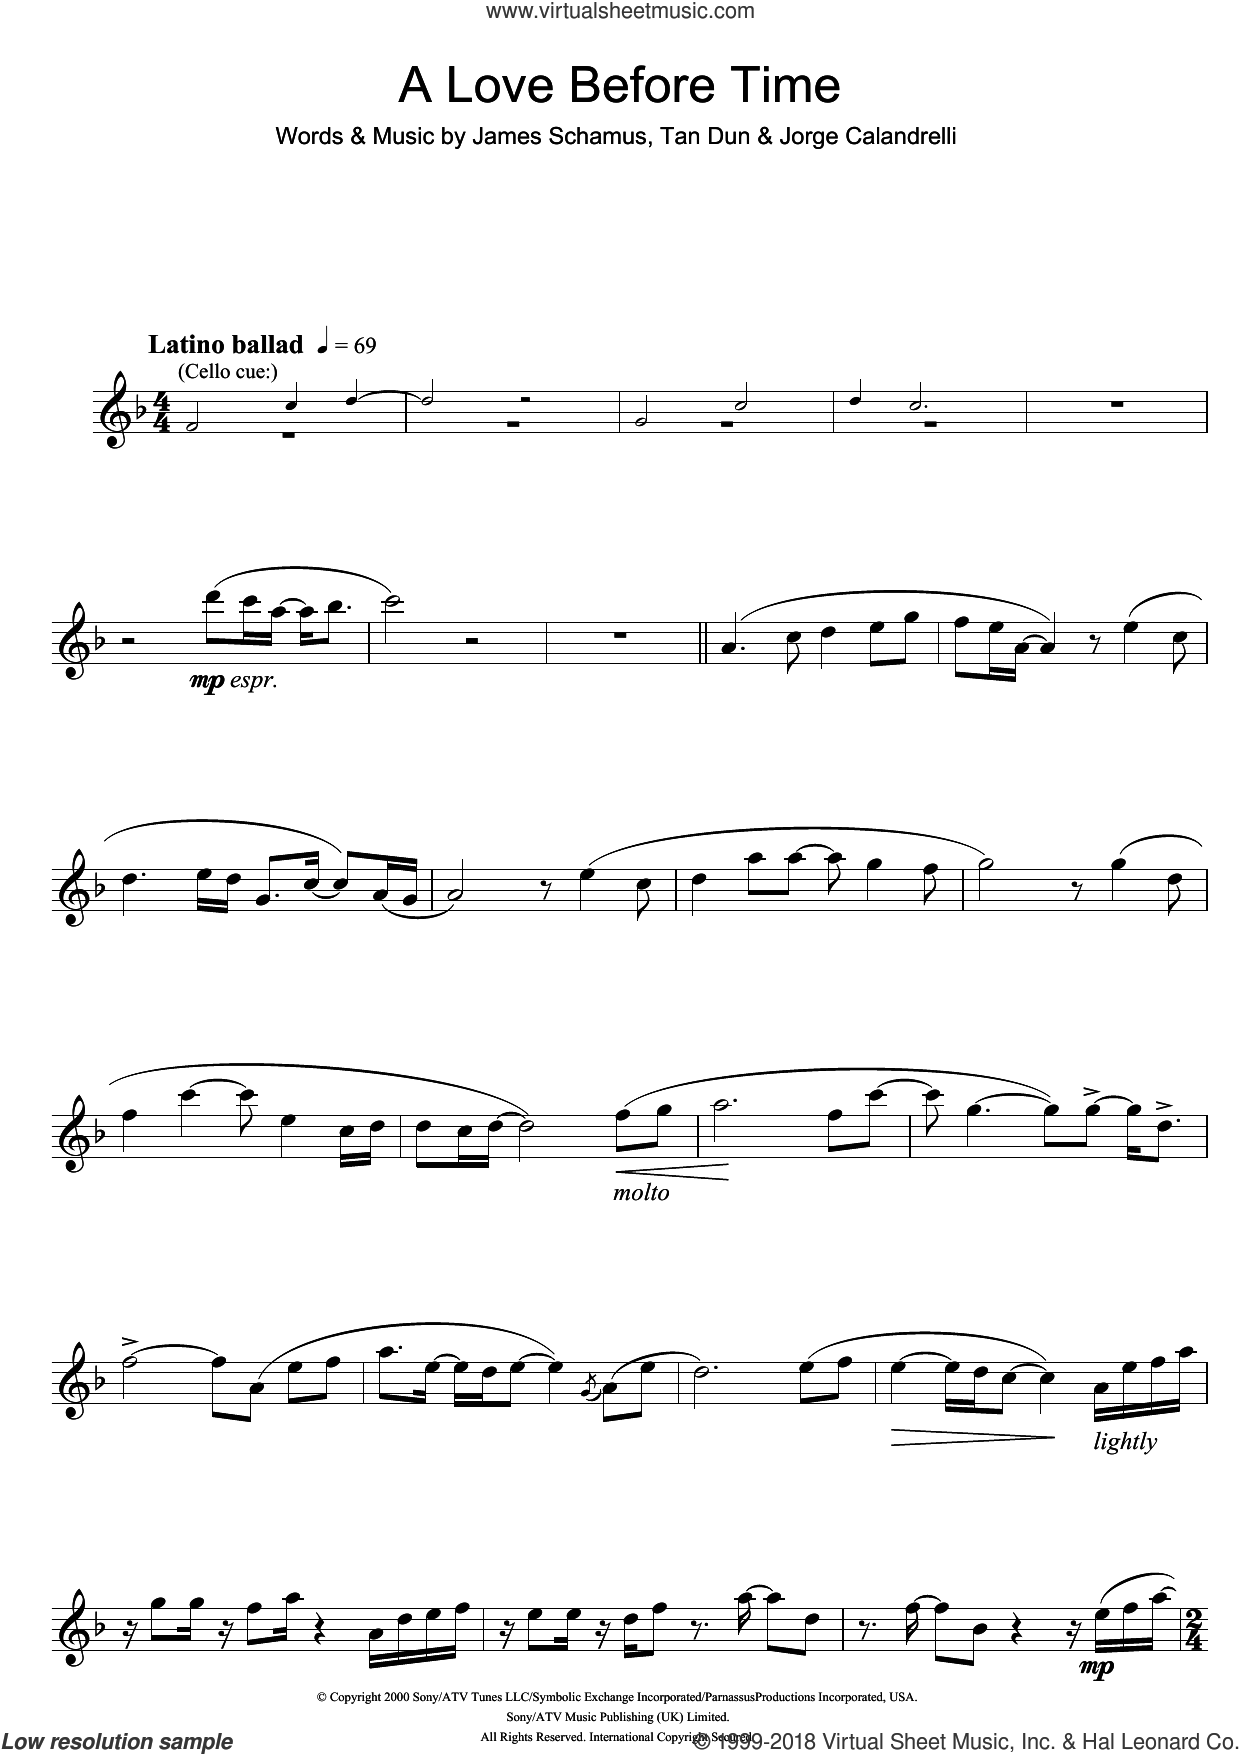 A Love Before Time (from Crouching Tiger, Hidden Dragon) sheet music for flute solo by Coco Lee, James Schamus, Jorge Calandrelli and Tan Dun, intermediate skill level